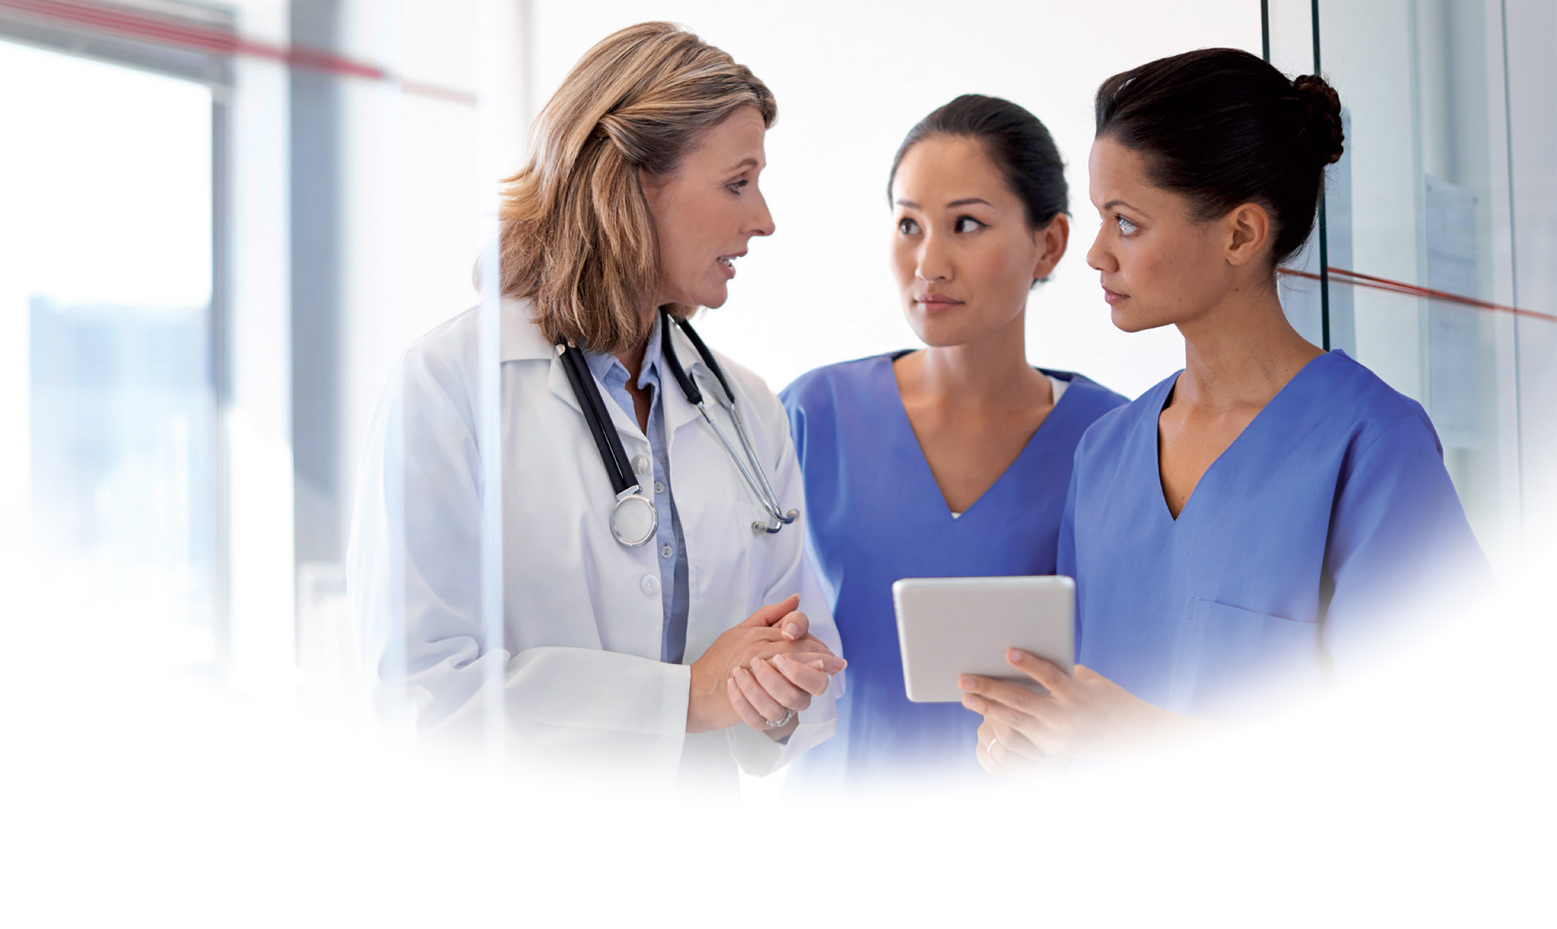 the world of a certified nursing assistant A certified nursing assistant job description often includes being a patient's main caregiver read cna duties and how to excel in this important role.